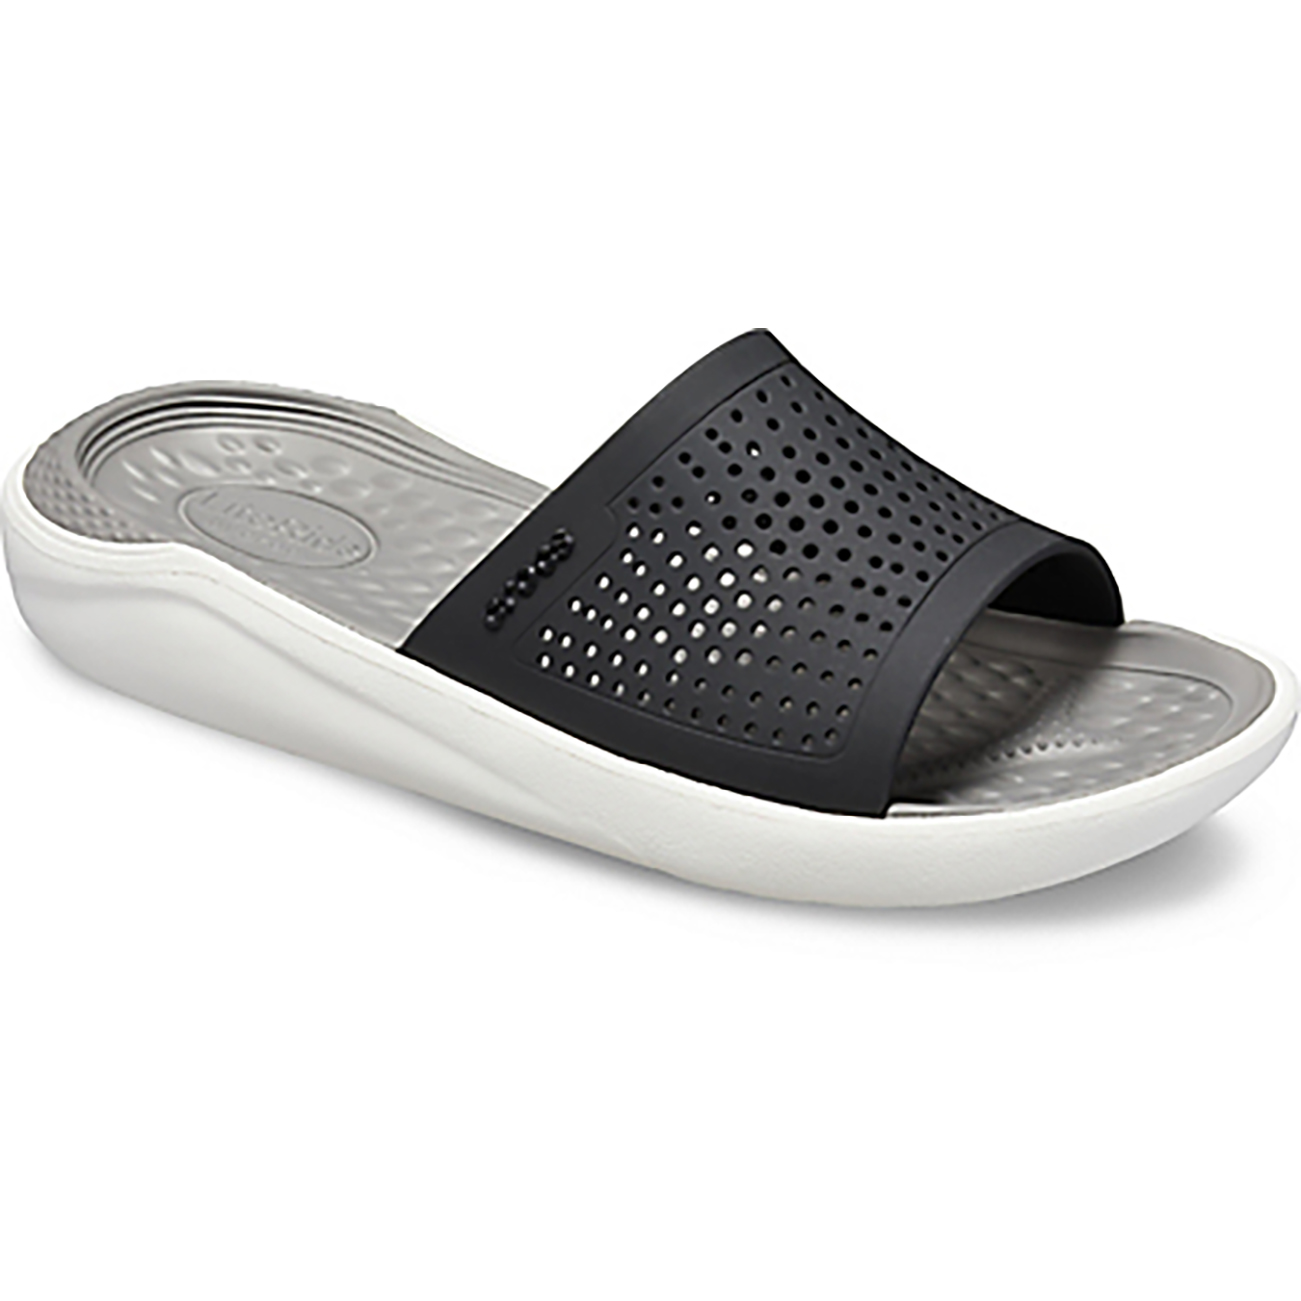 Unisex Adults Crocs LiteRide Slide